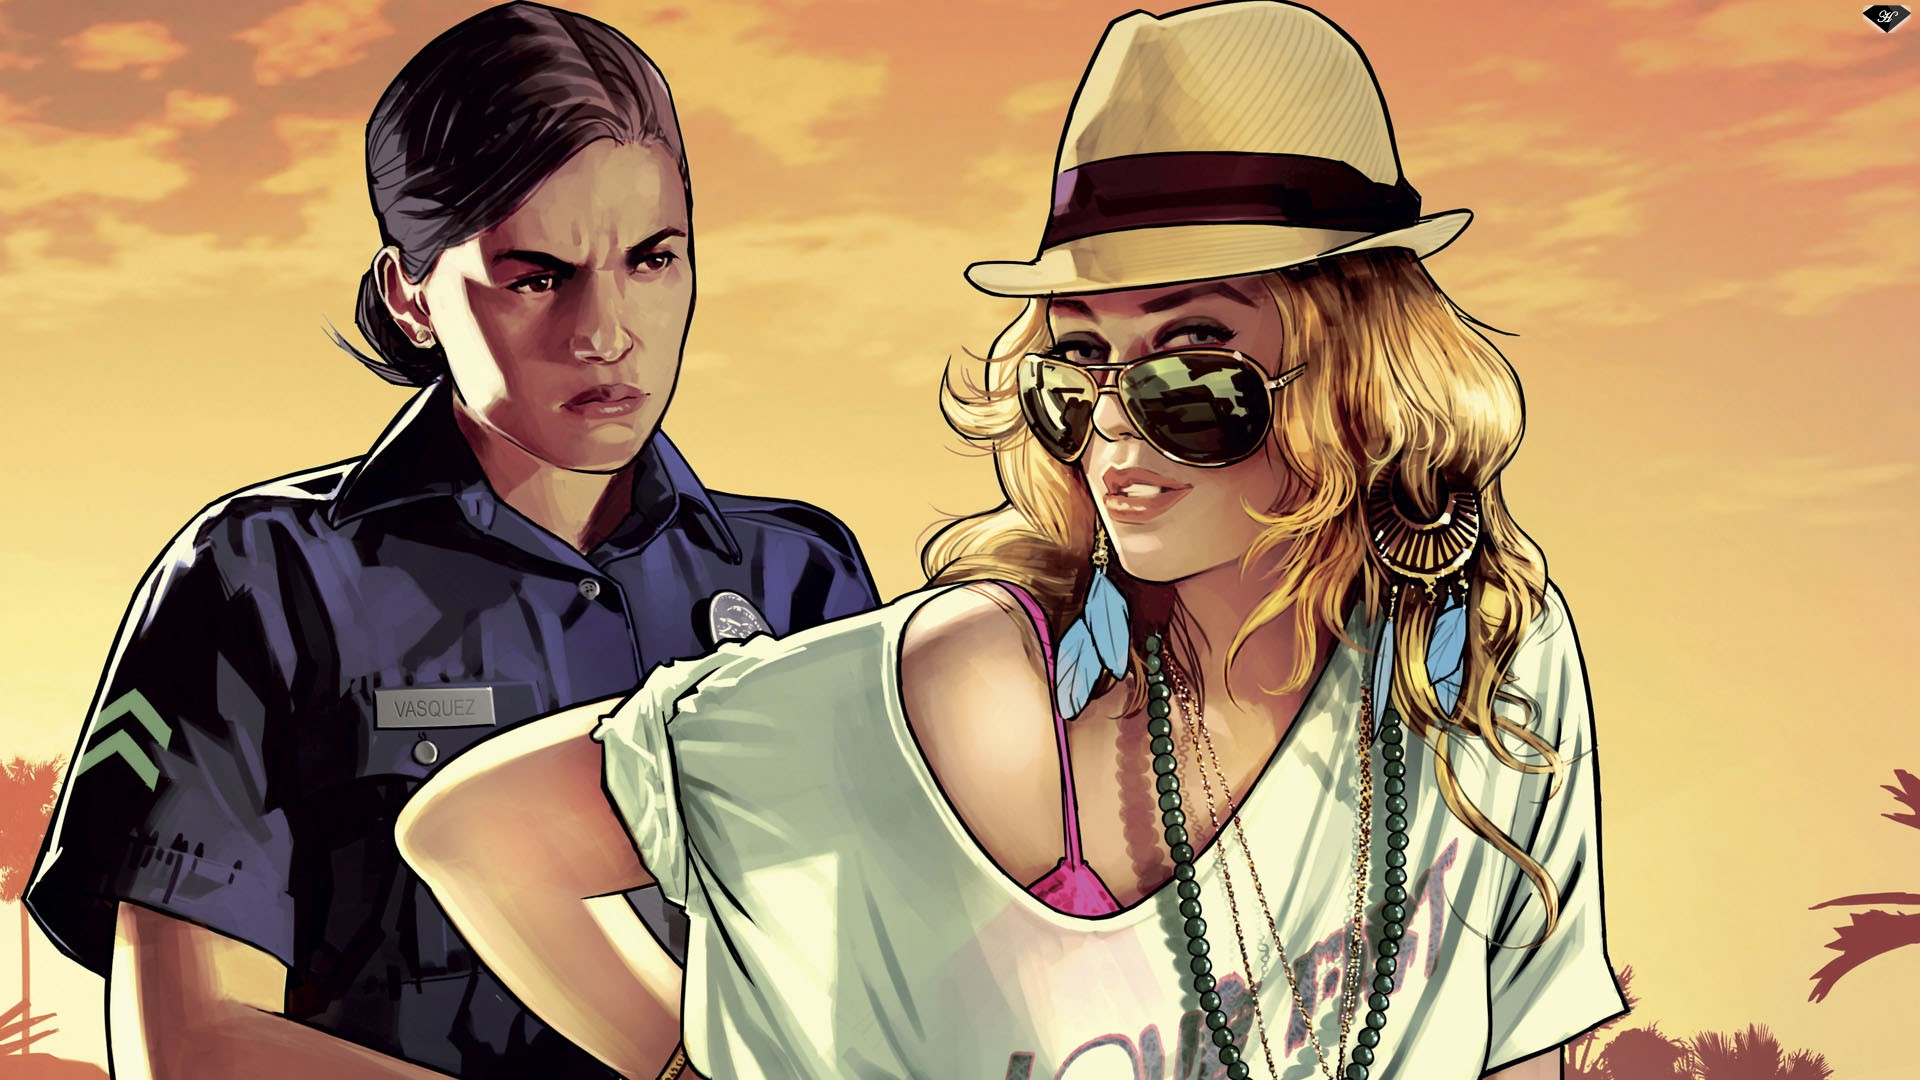 Gta Hd Wallpaper Background Image 1920x1080 Id 321305